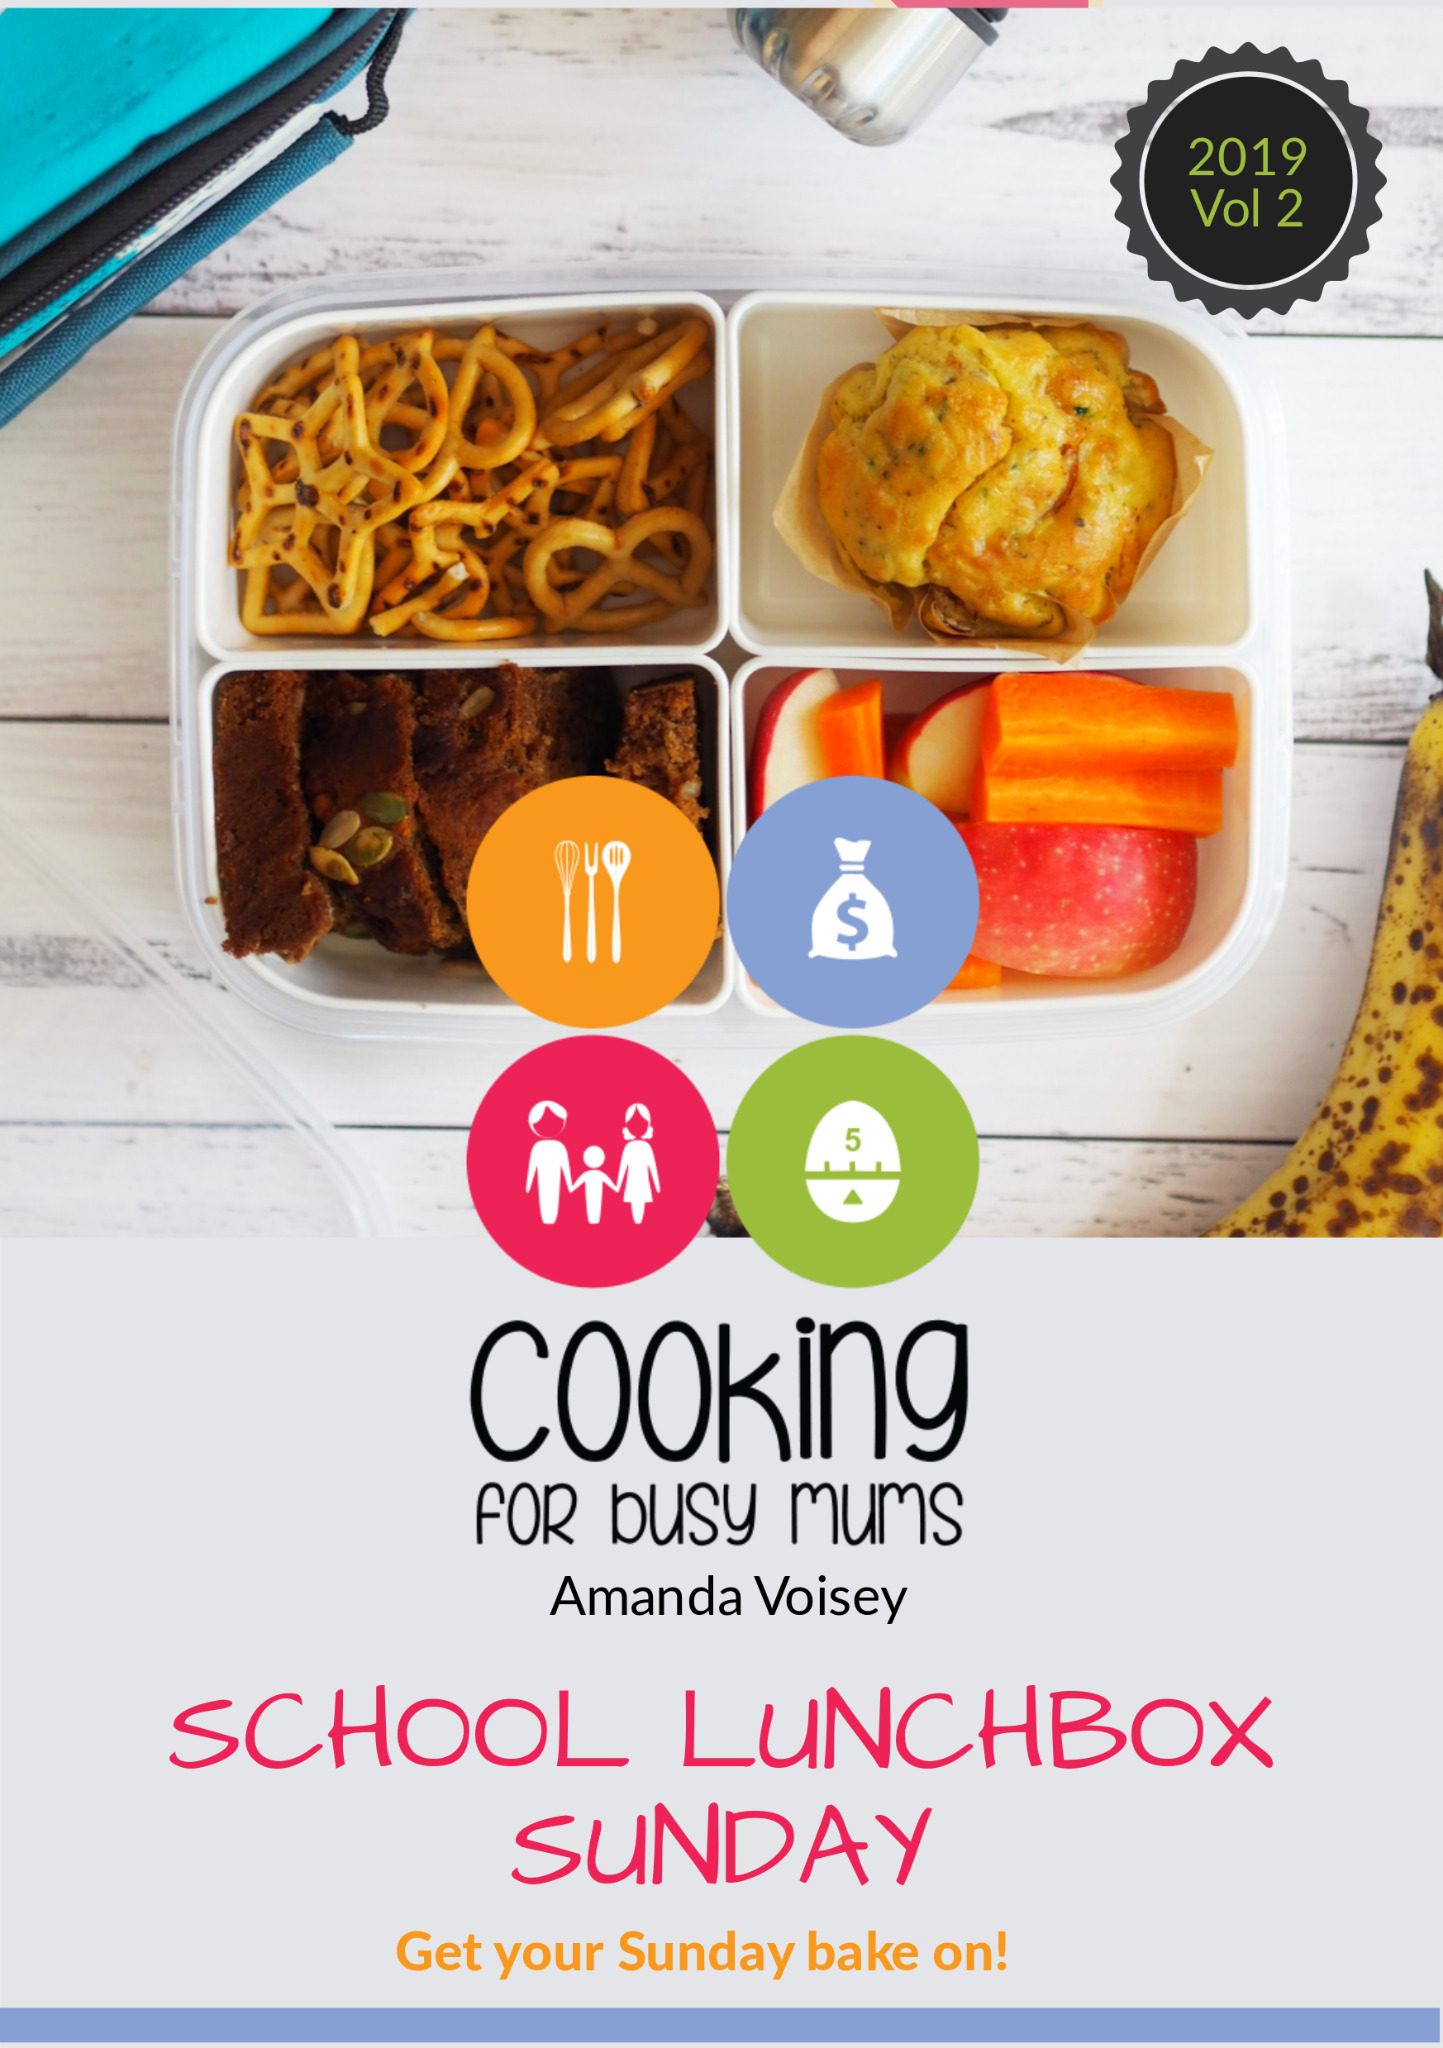 2019 School Lunchbox Sunday the Magazine - BUNDLE OFFER